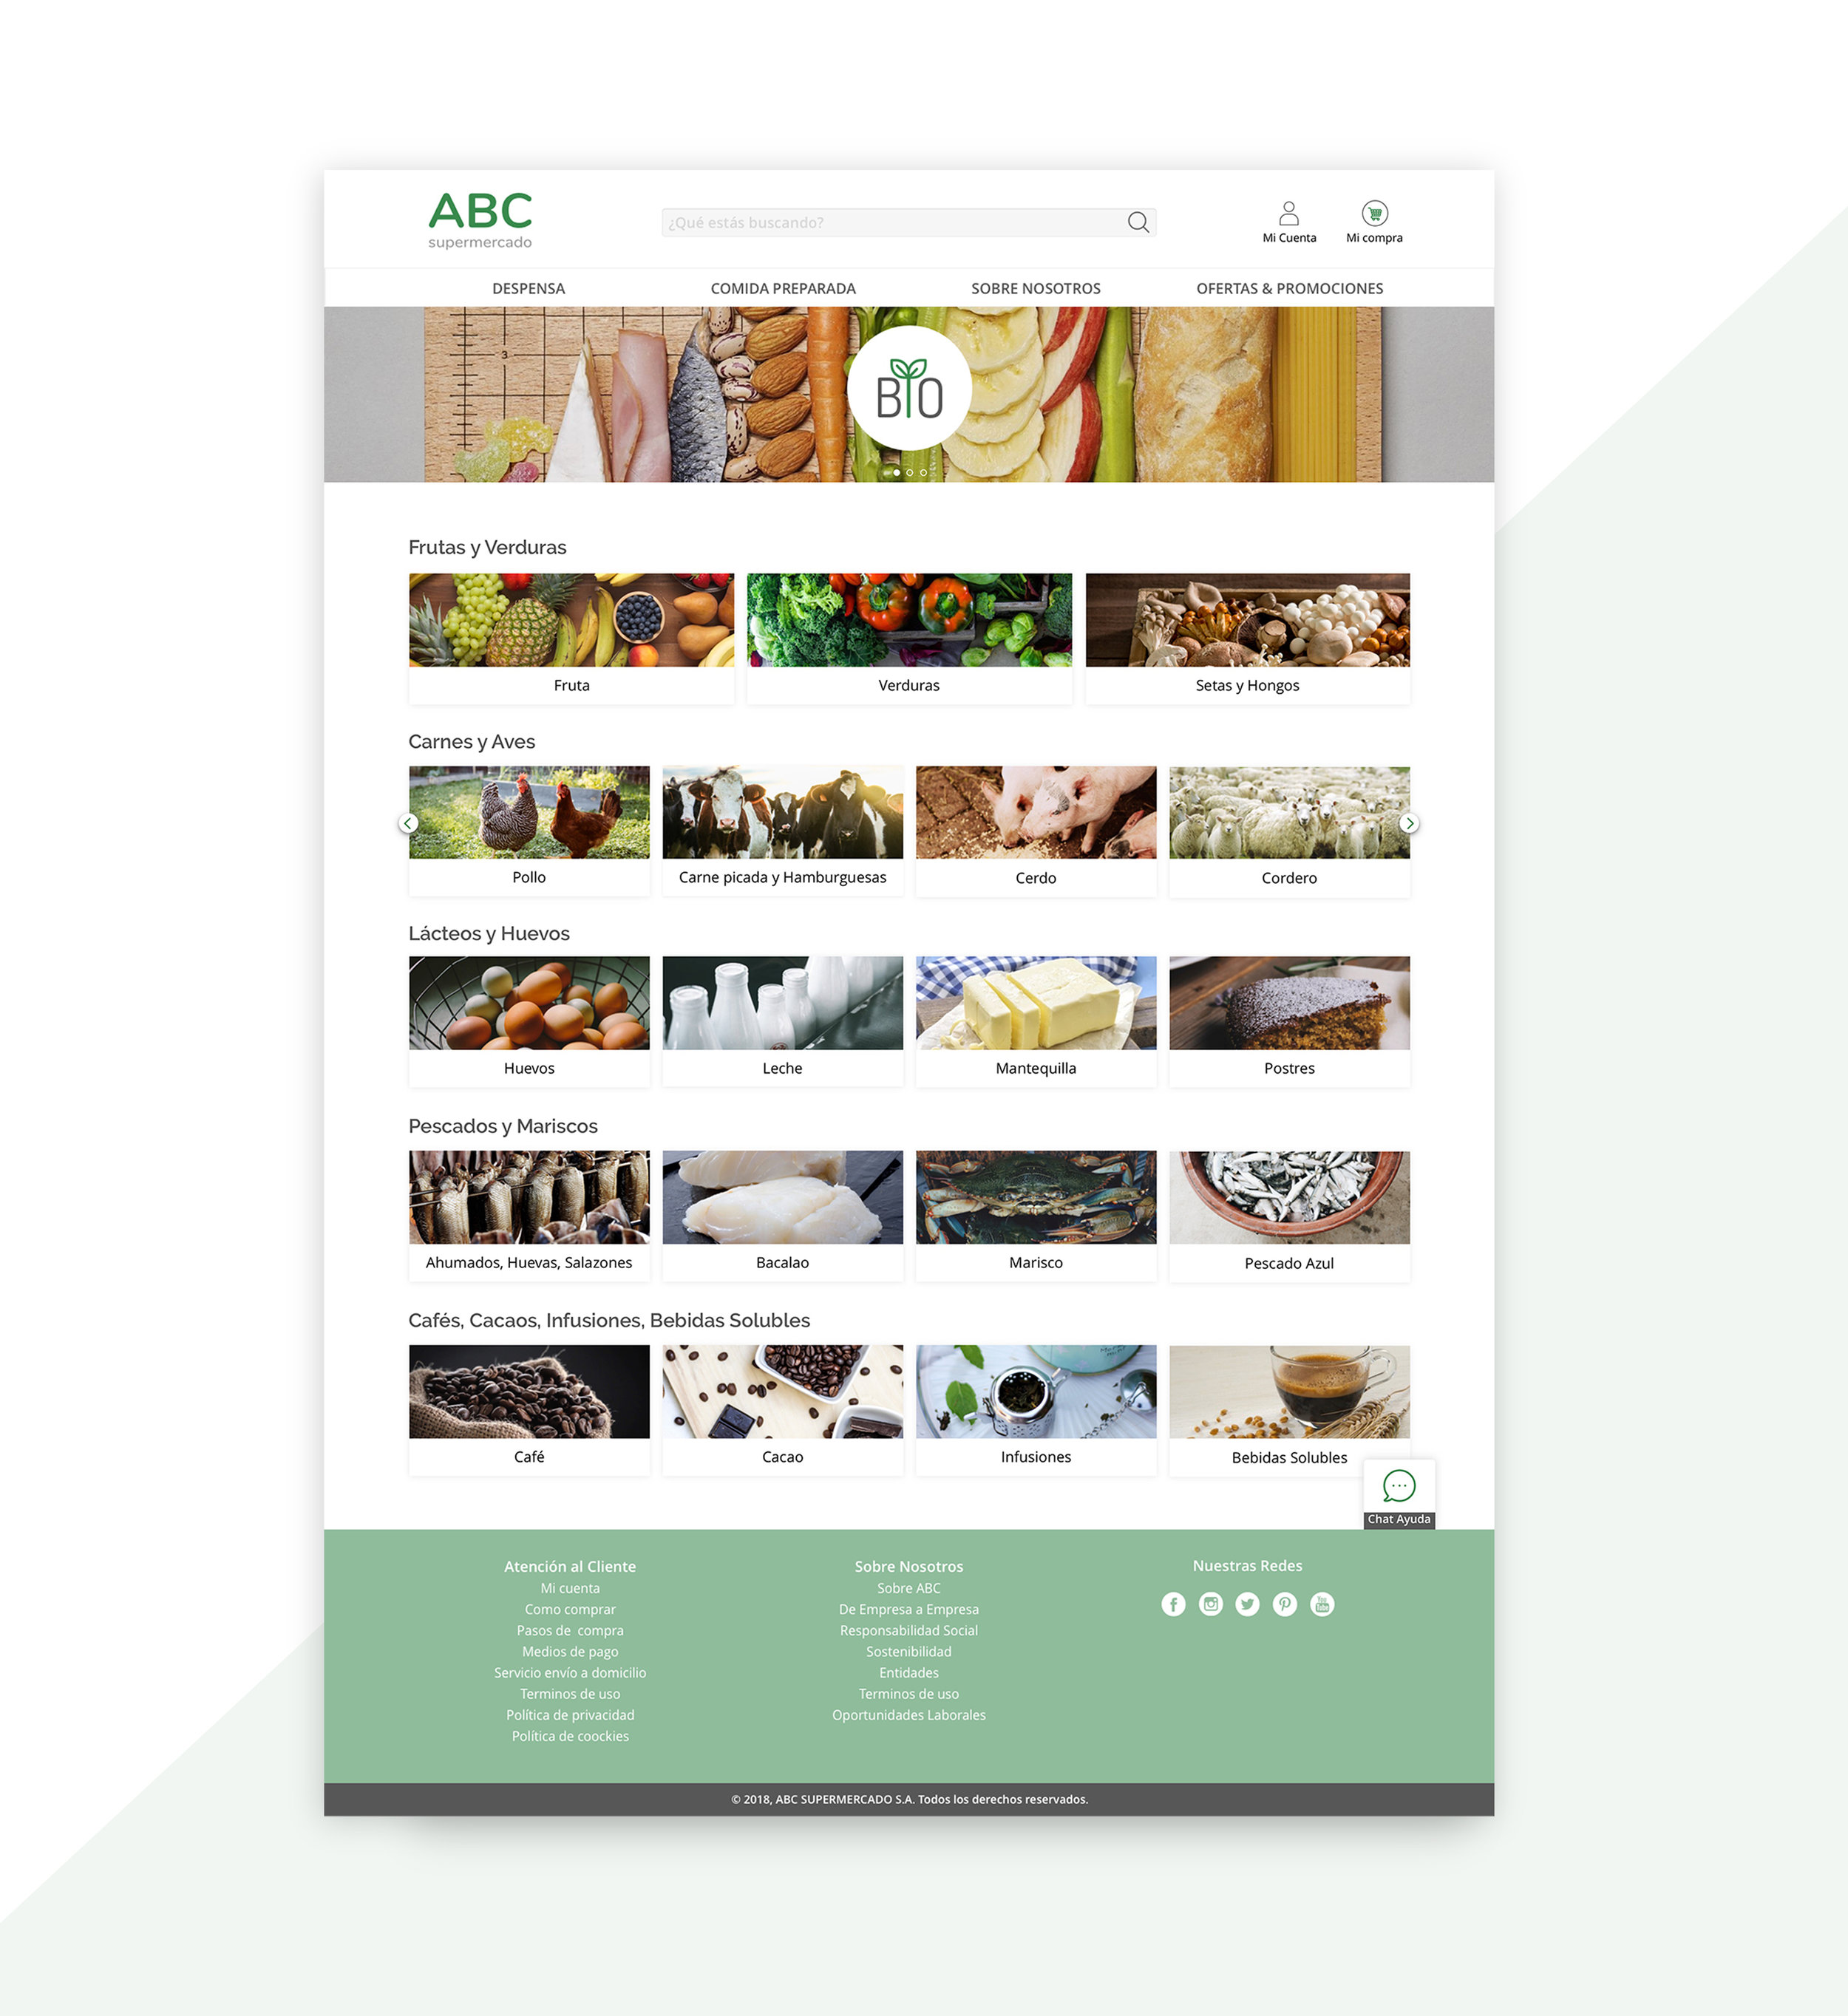 ABC Supermarket - Proyecto realizado para el lanzamiento online de un supermercado regional, con productos de alta calidad, y que además posee varios restaurantes con lo que desea incluir un servicio de comidaa domicilio en su nueva página web.Project for the online launch of a regional supermarket, which sells high quality products,and also has several restaurants so they wantto include a home delivery service on theirnew website.